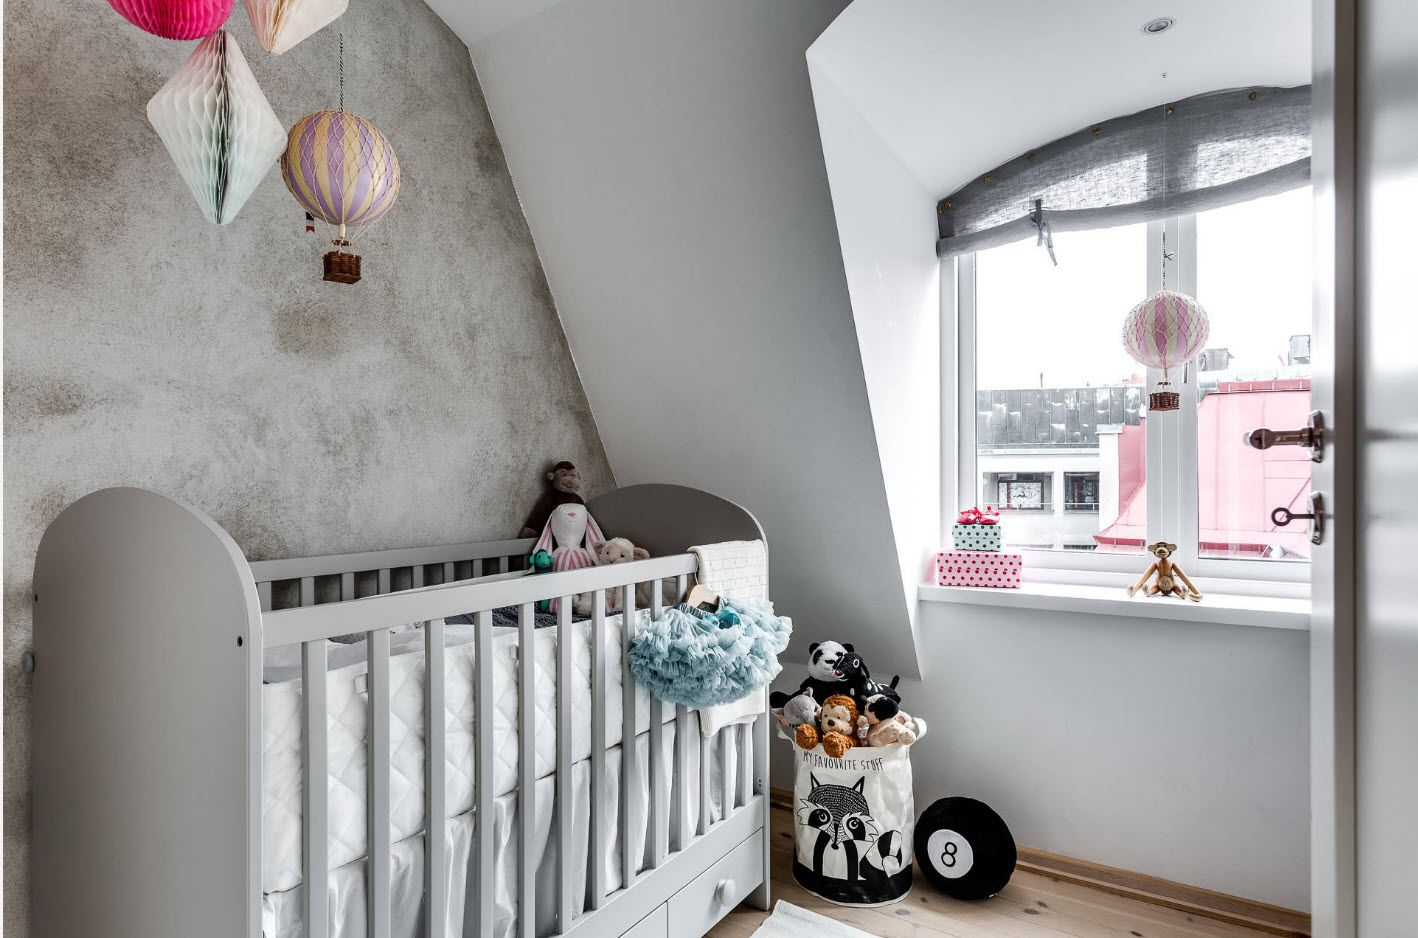 Loft space successfully decorated to become a nursery